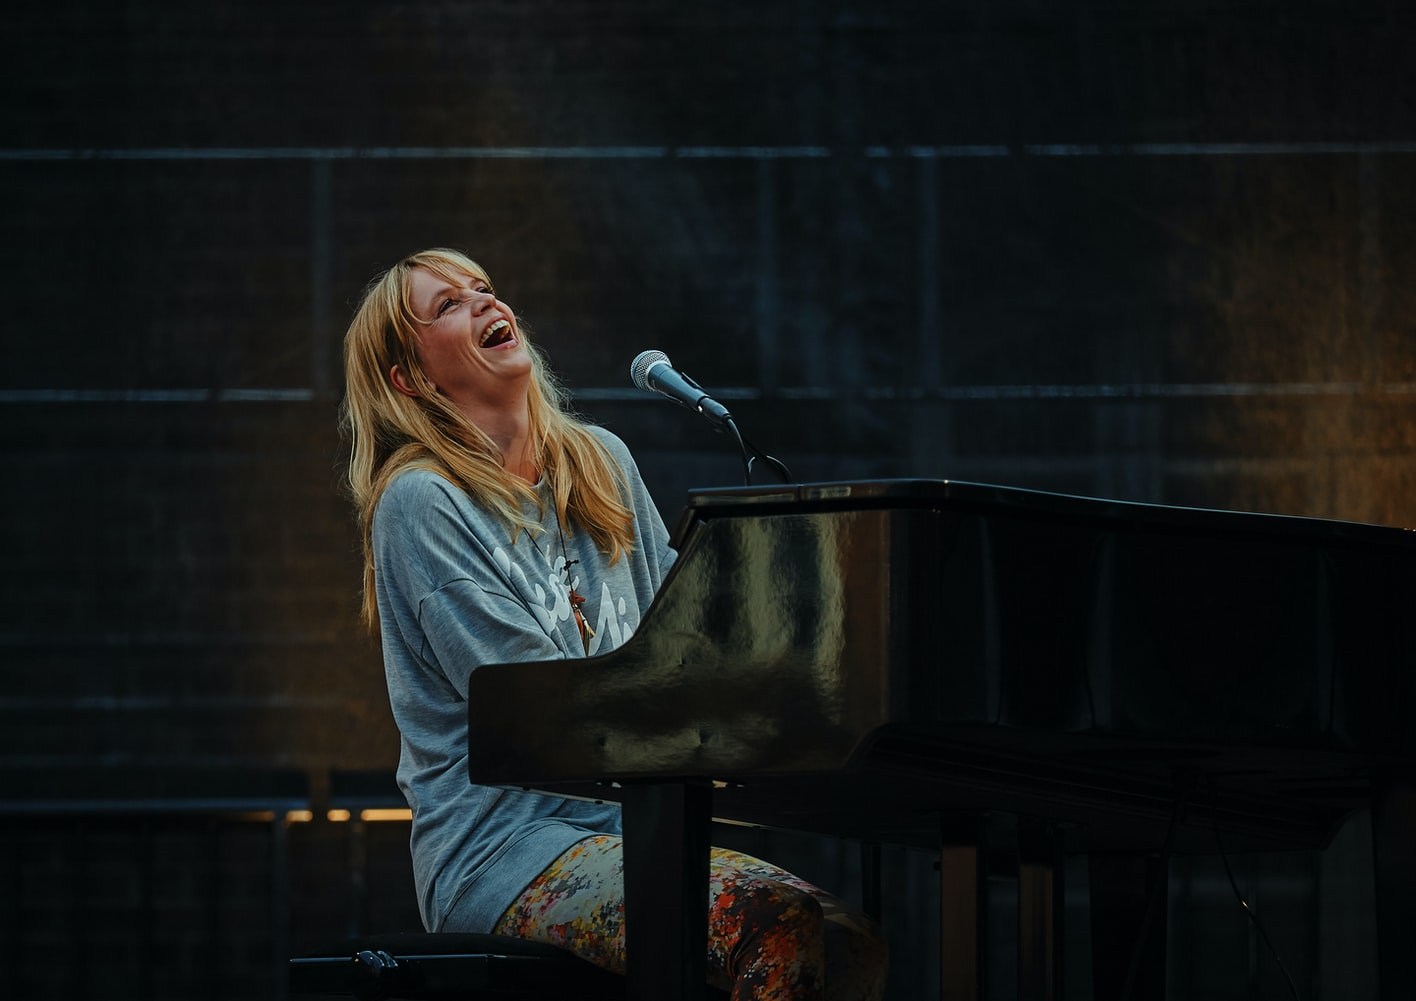 Woman performing at a grand piano on stage laughing and looking up.